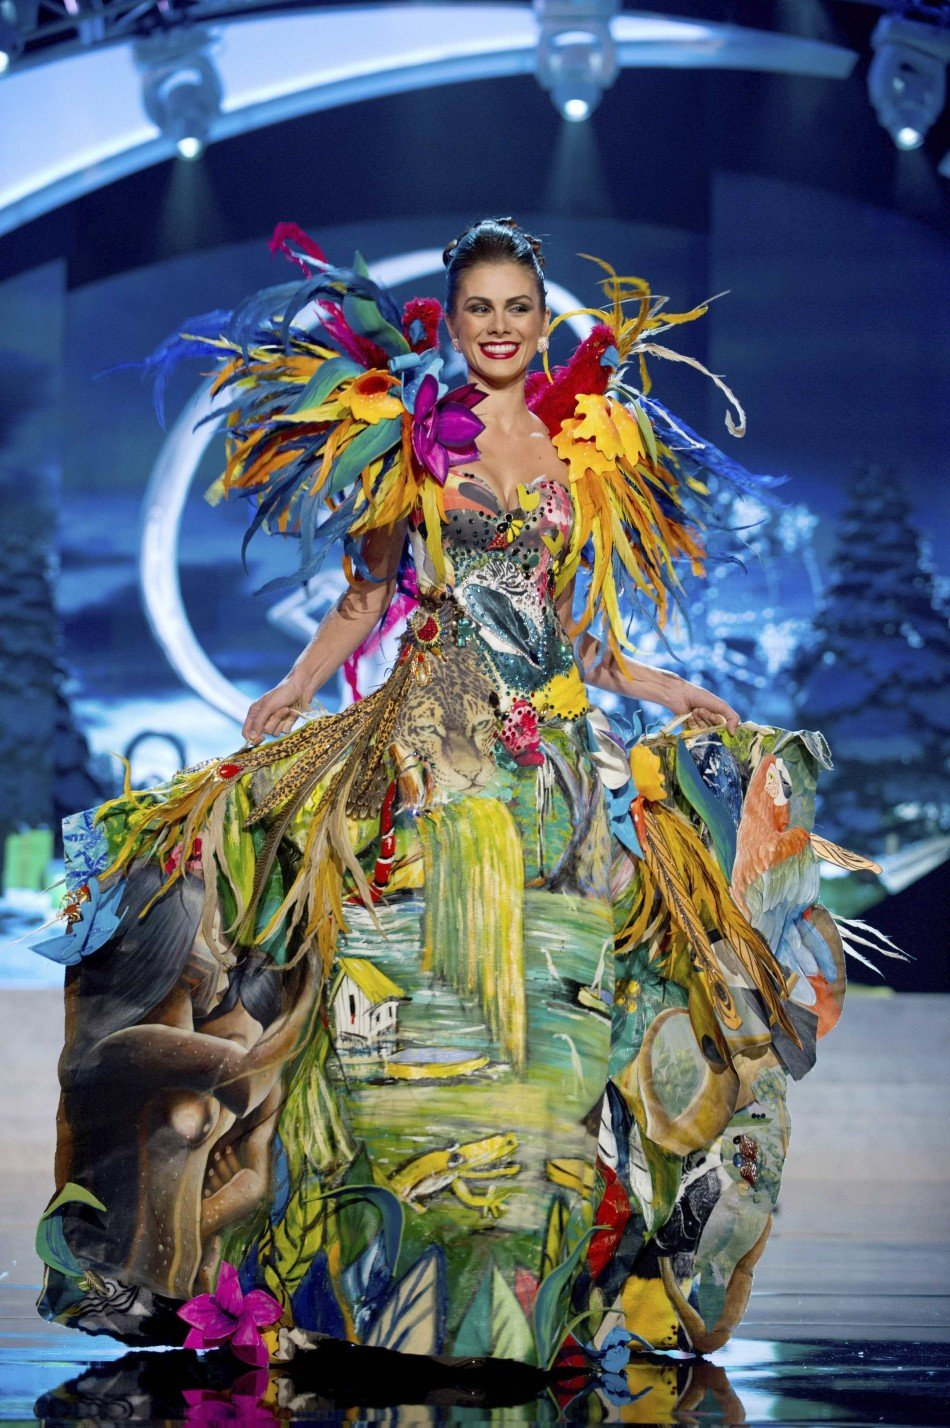 329232-miss-brazil-markus-performs-onstage-at-the-  sc 1 st  FAB Magazine & FAB Beauty: Miss Universe 2012 National costumes - FAB BLOG